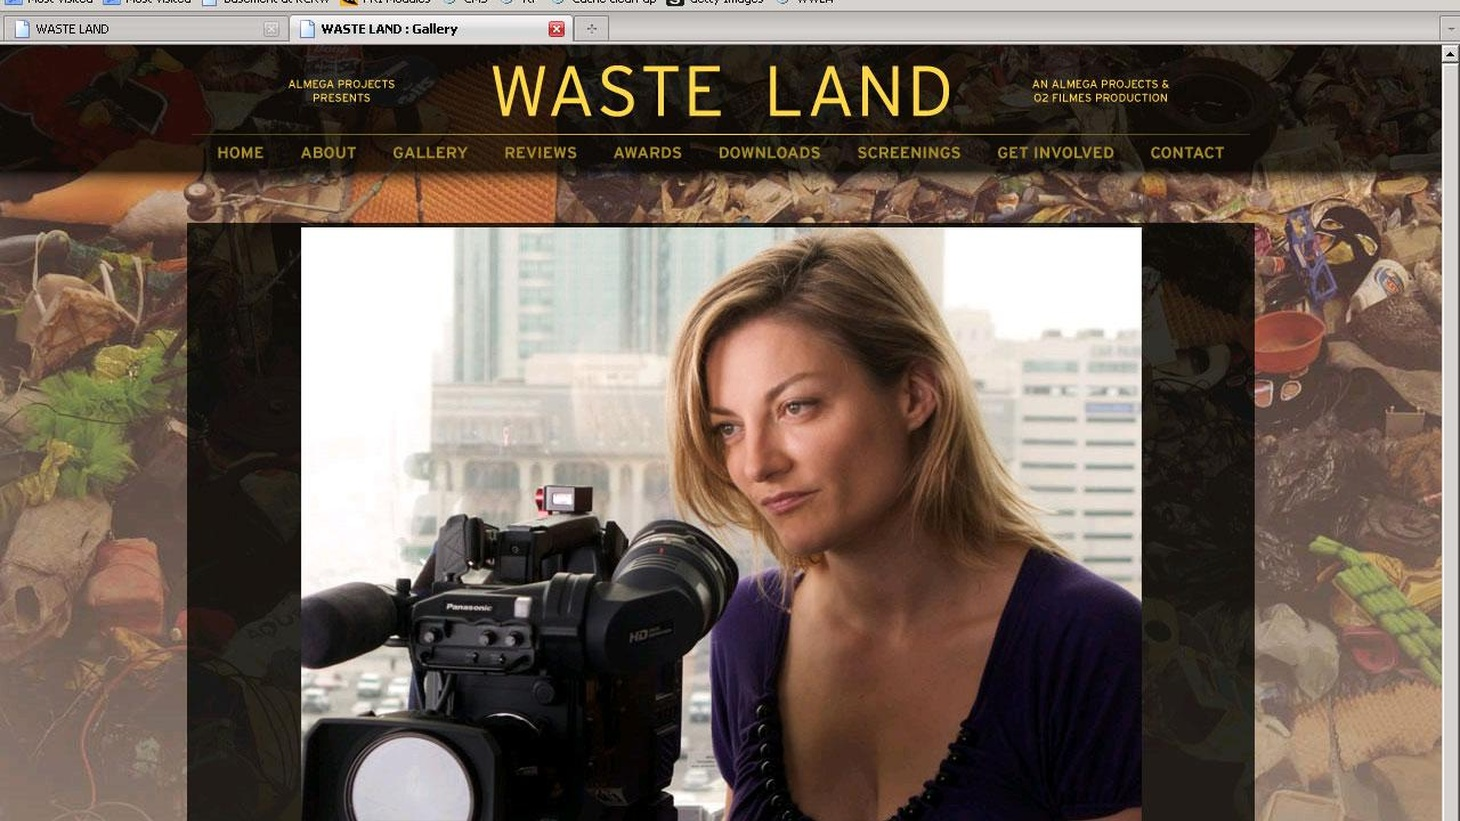 The Amish, blind mountain climbers, fighting for nuclear disarmament... Director Lucy Walker's (Countdown to Zero, Devil's Playground, Blindsight) new film, Waste Land, is about waste becoming art. It's drama and non-fiction.